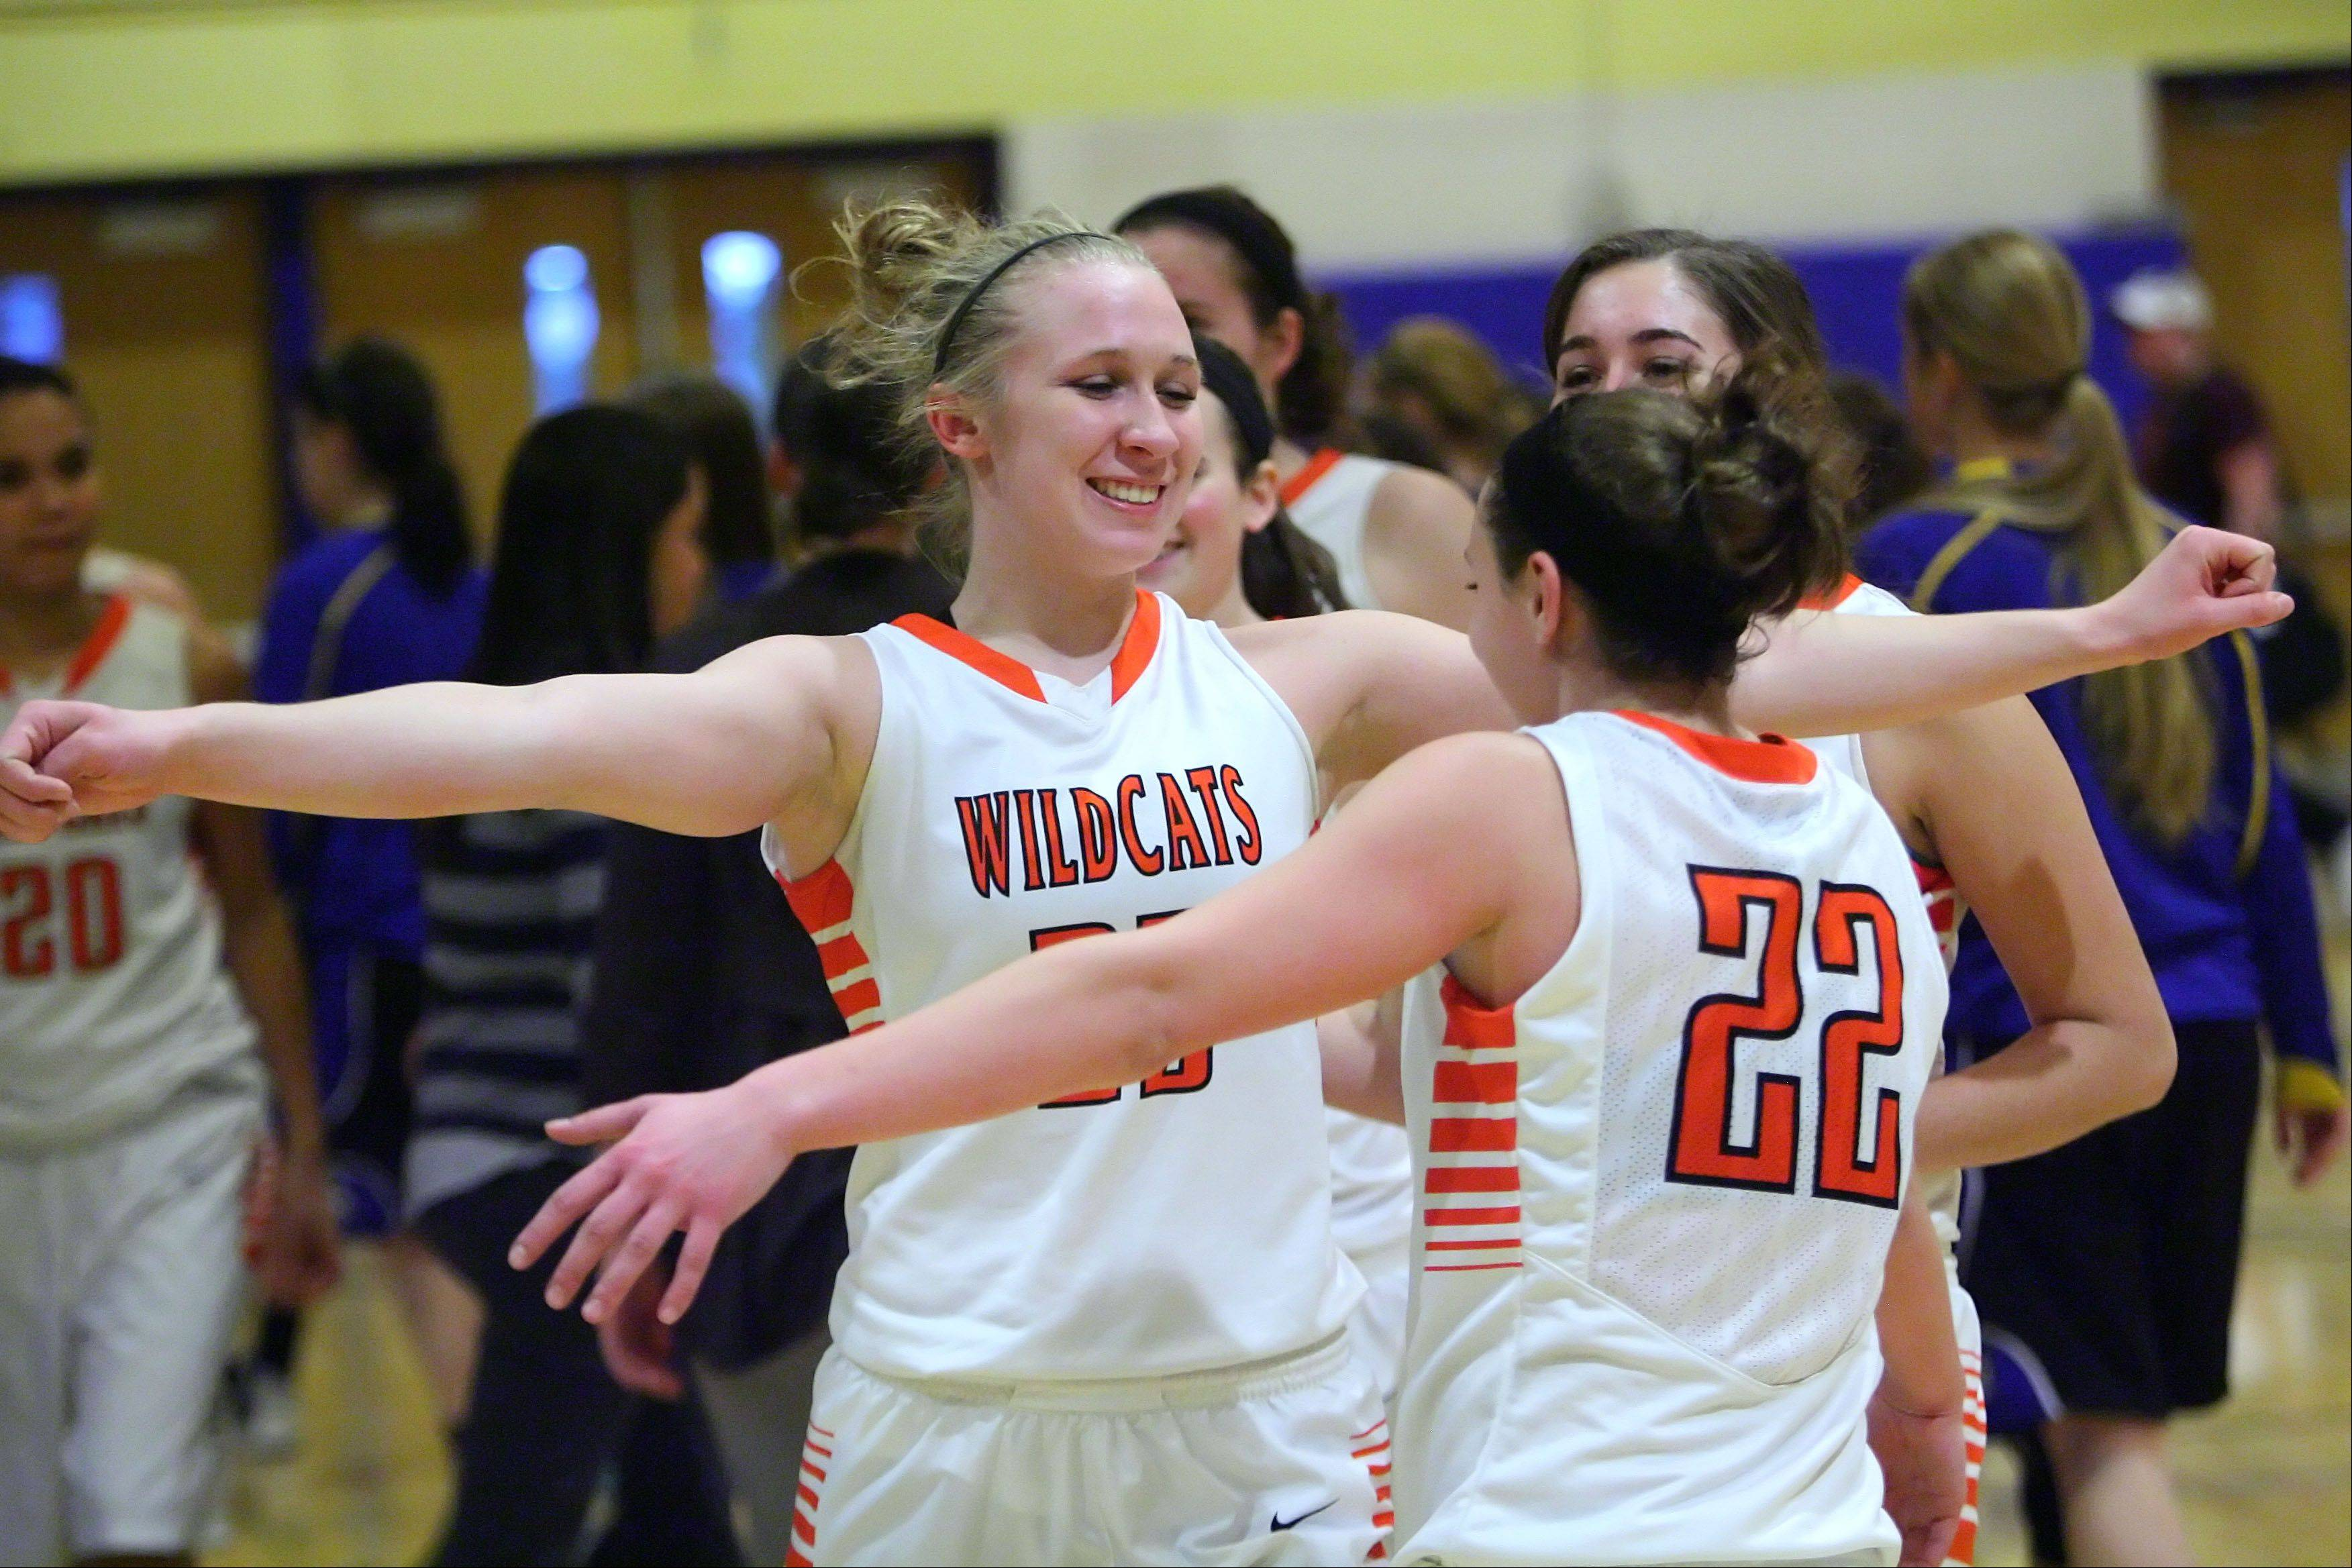 Libertyville's Dana Kym, left, and Olivia Mayer celebrate after beating Wheeling.